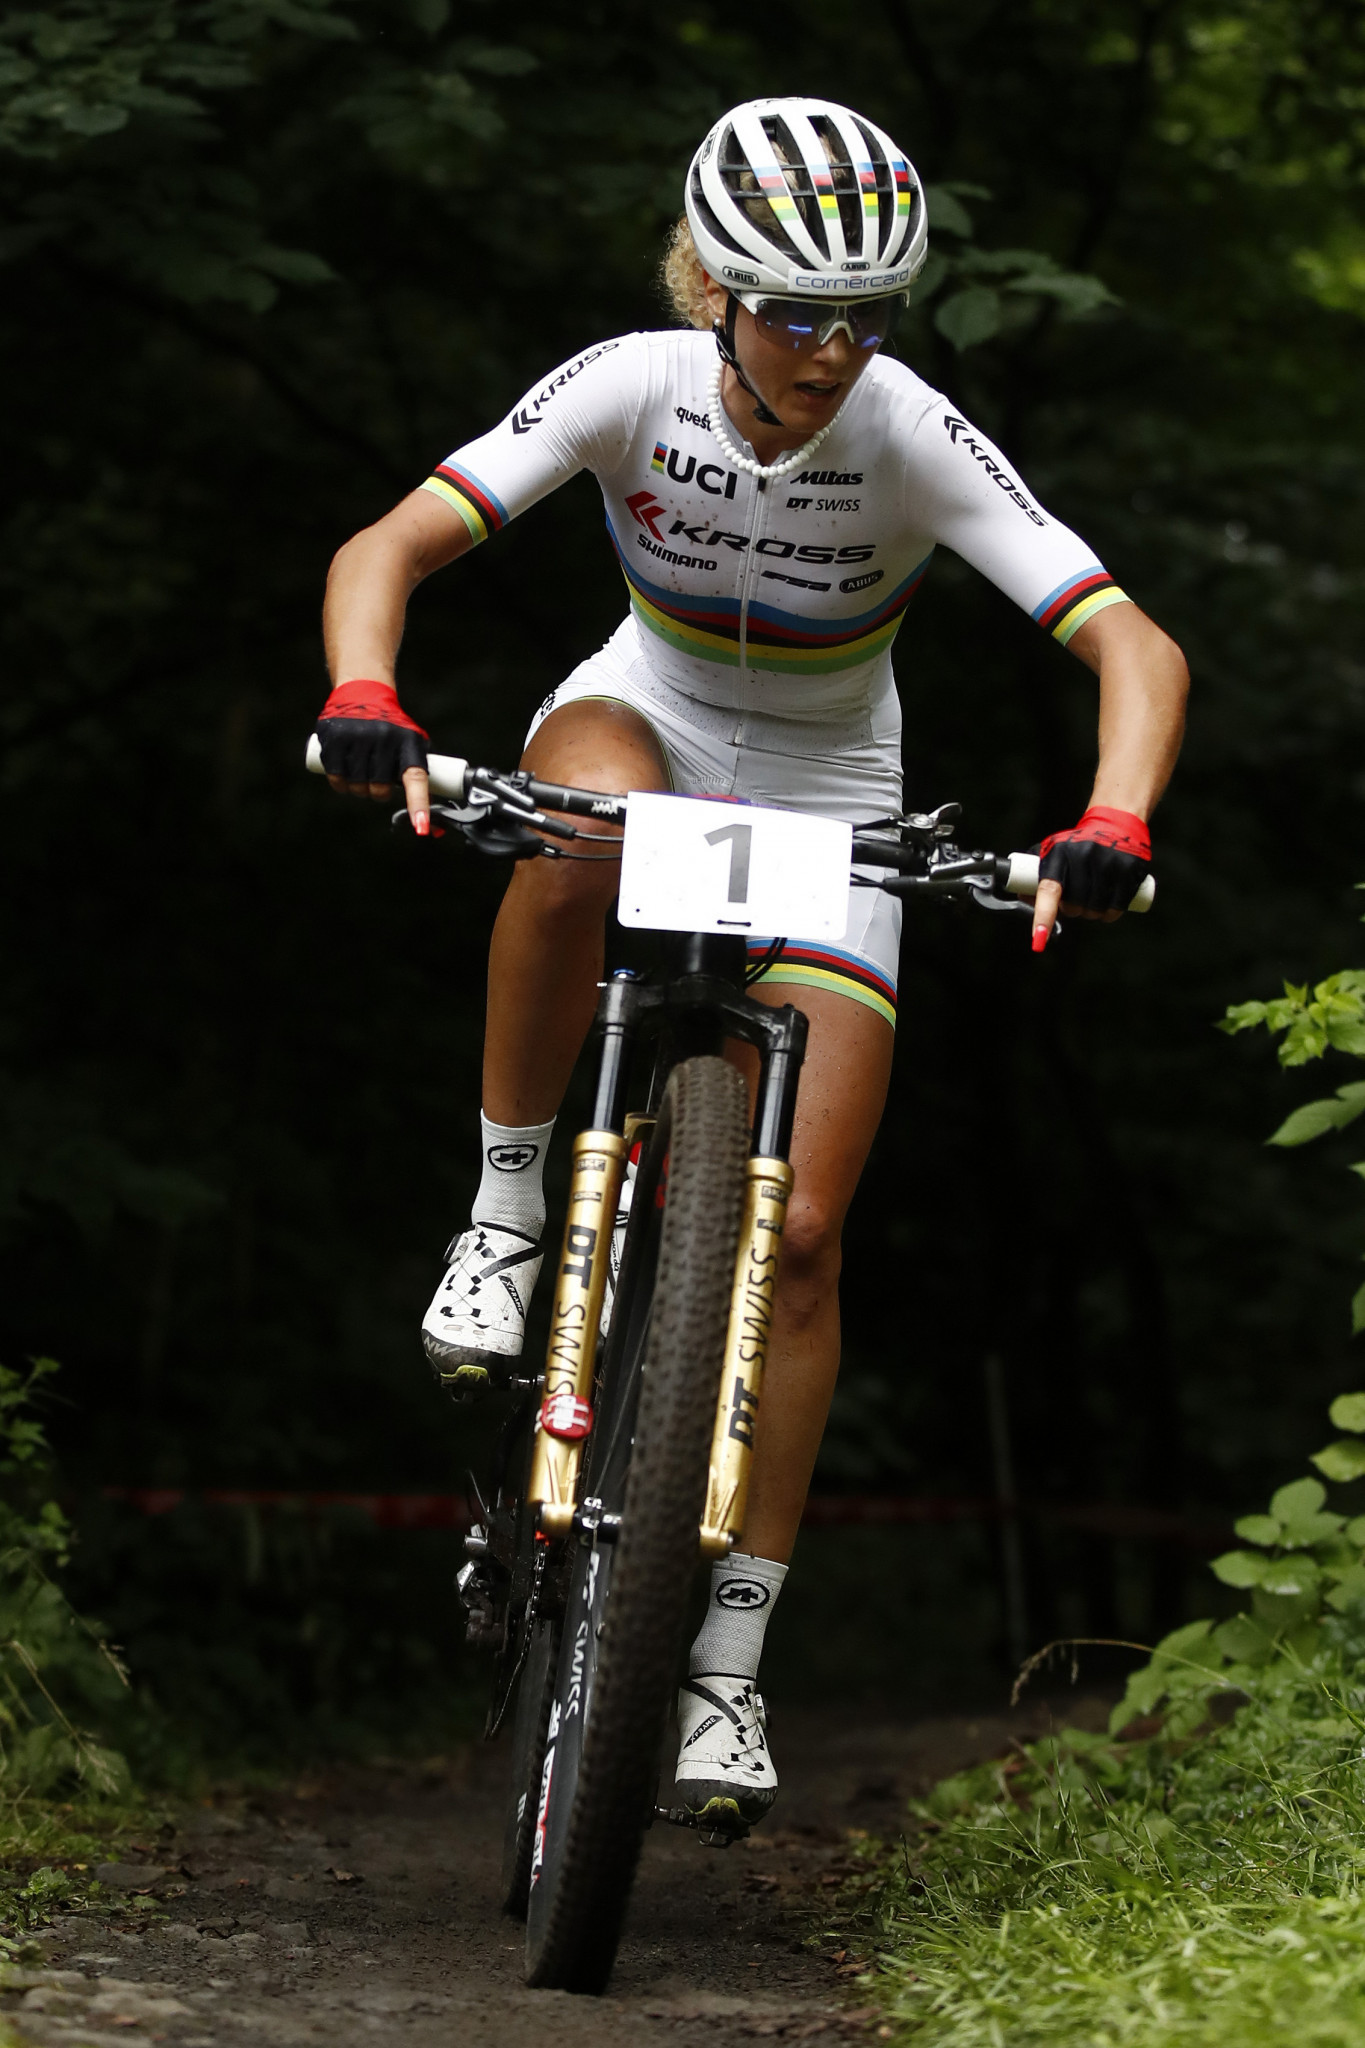 Switzerland's Jolanda Neff is expected to make a strong defence of her title at the UEC Mountain Bike European Championships that start in Brno tomorrow ©Getty Images